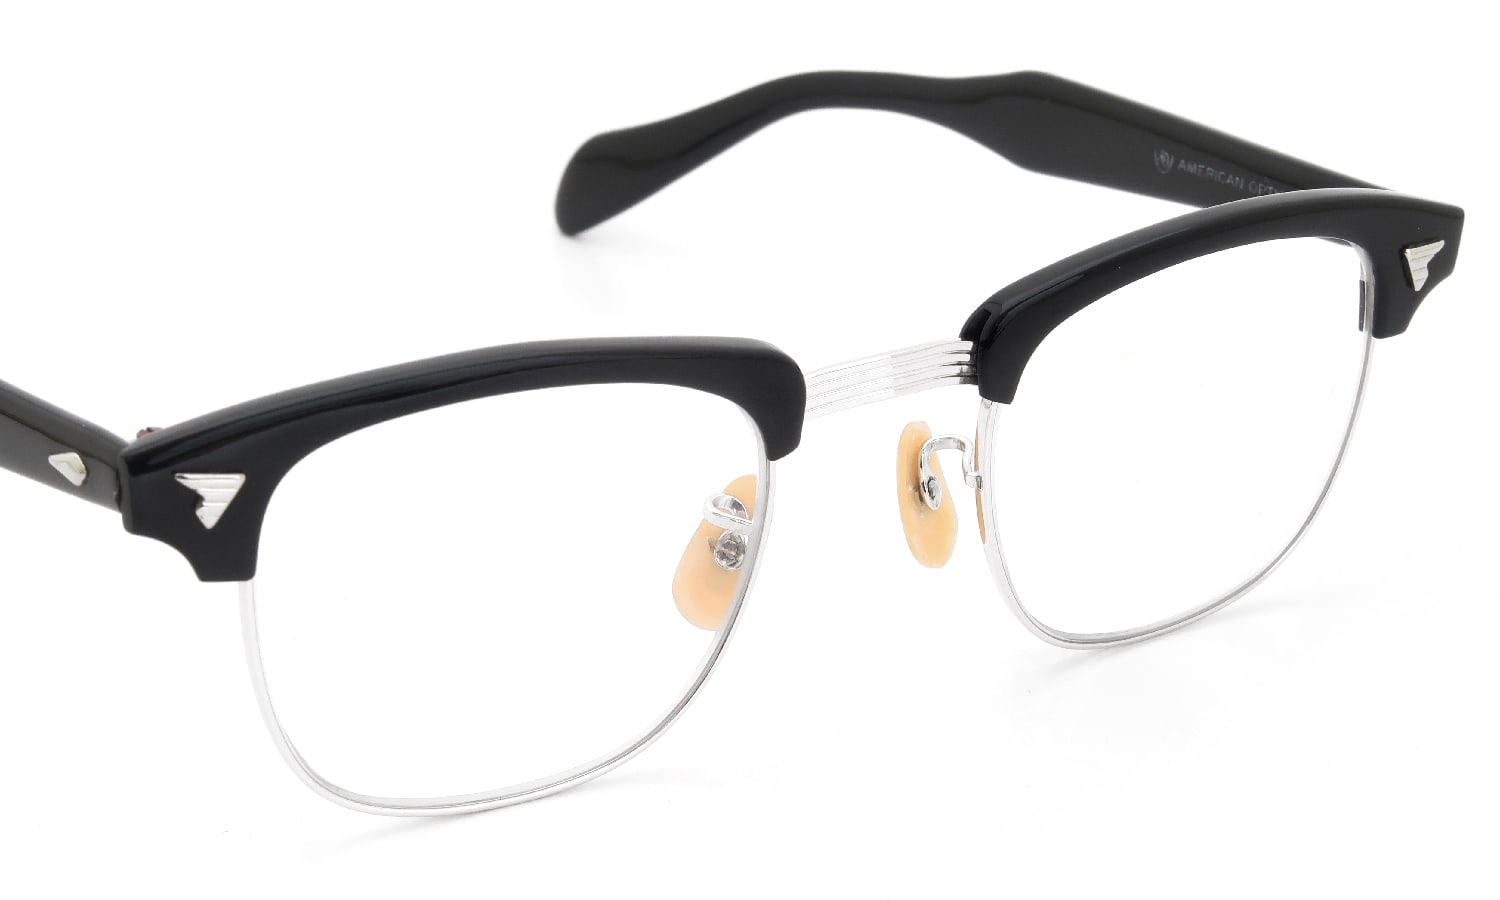 American Optical 1950s〜1960s A600 Combination BK-WG 1/10 12KGF 46-22